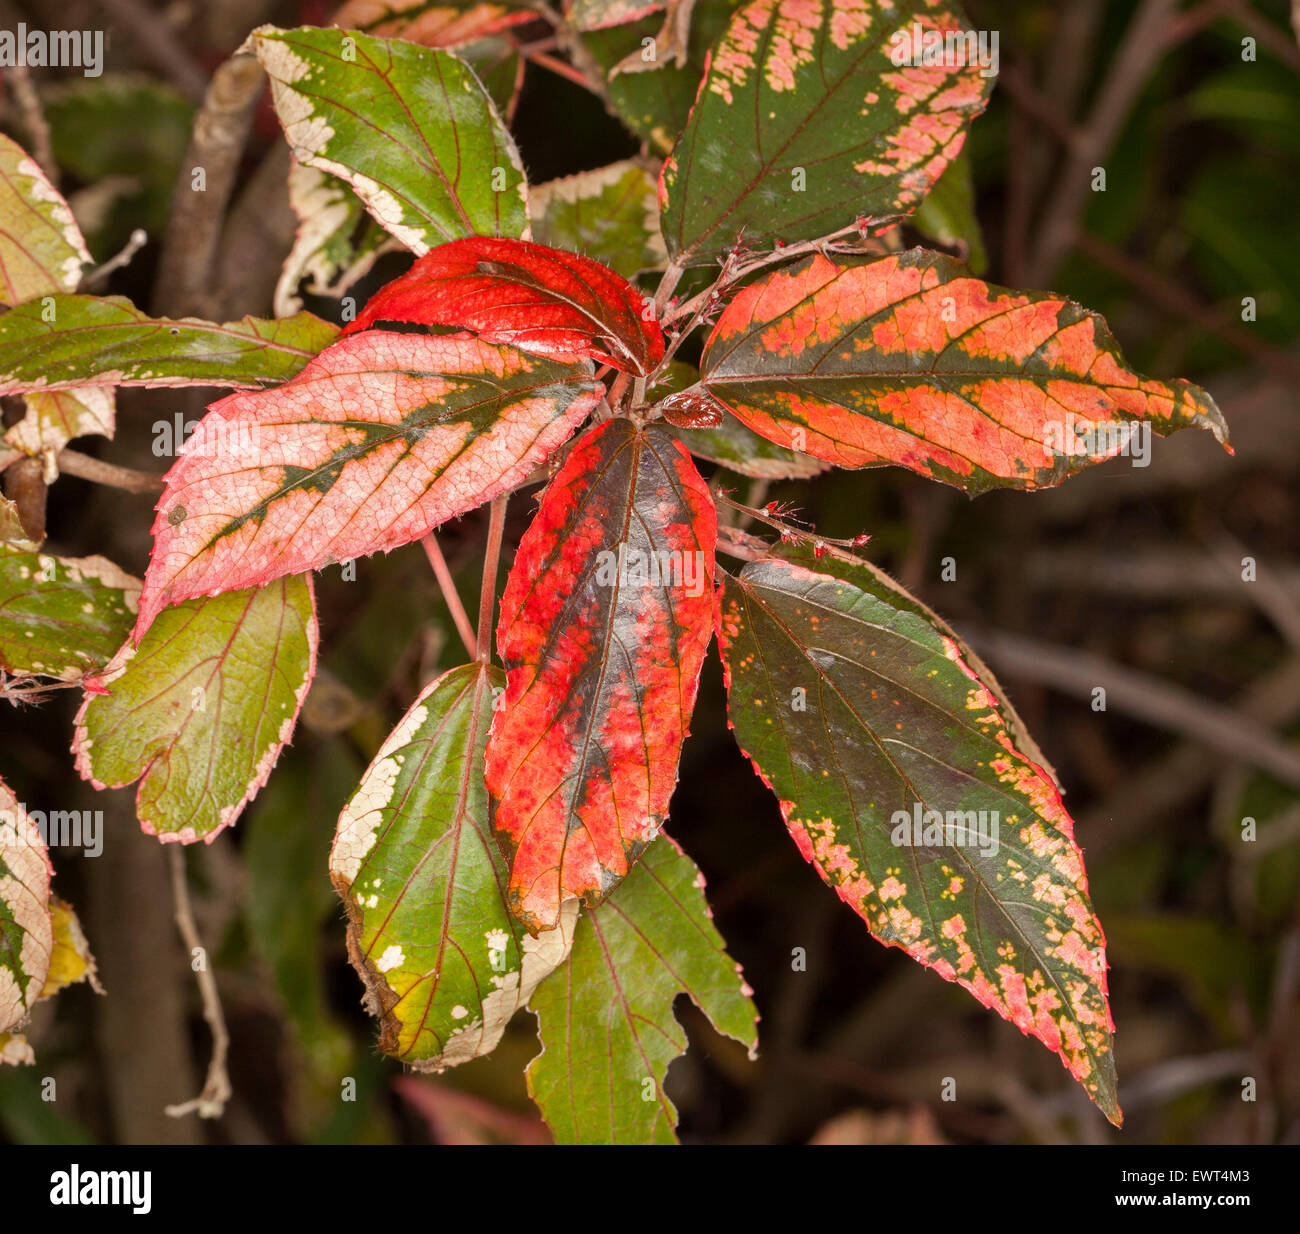 Tropical bush red green leaves stock photos tropical bush red cluster of bright red pink and green mottled and variegated leaves of acalypha wilkesiana mightylinksfo